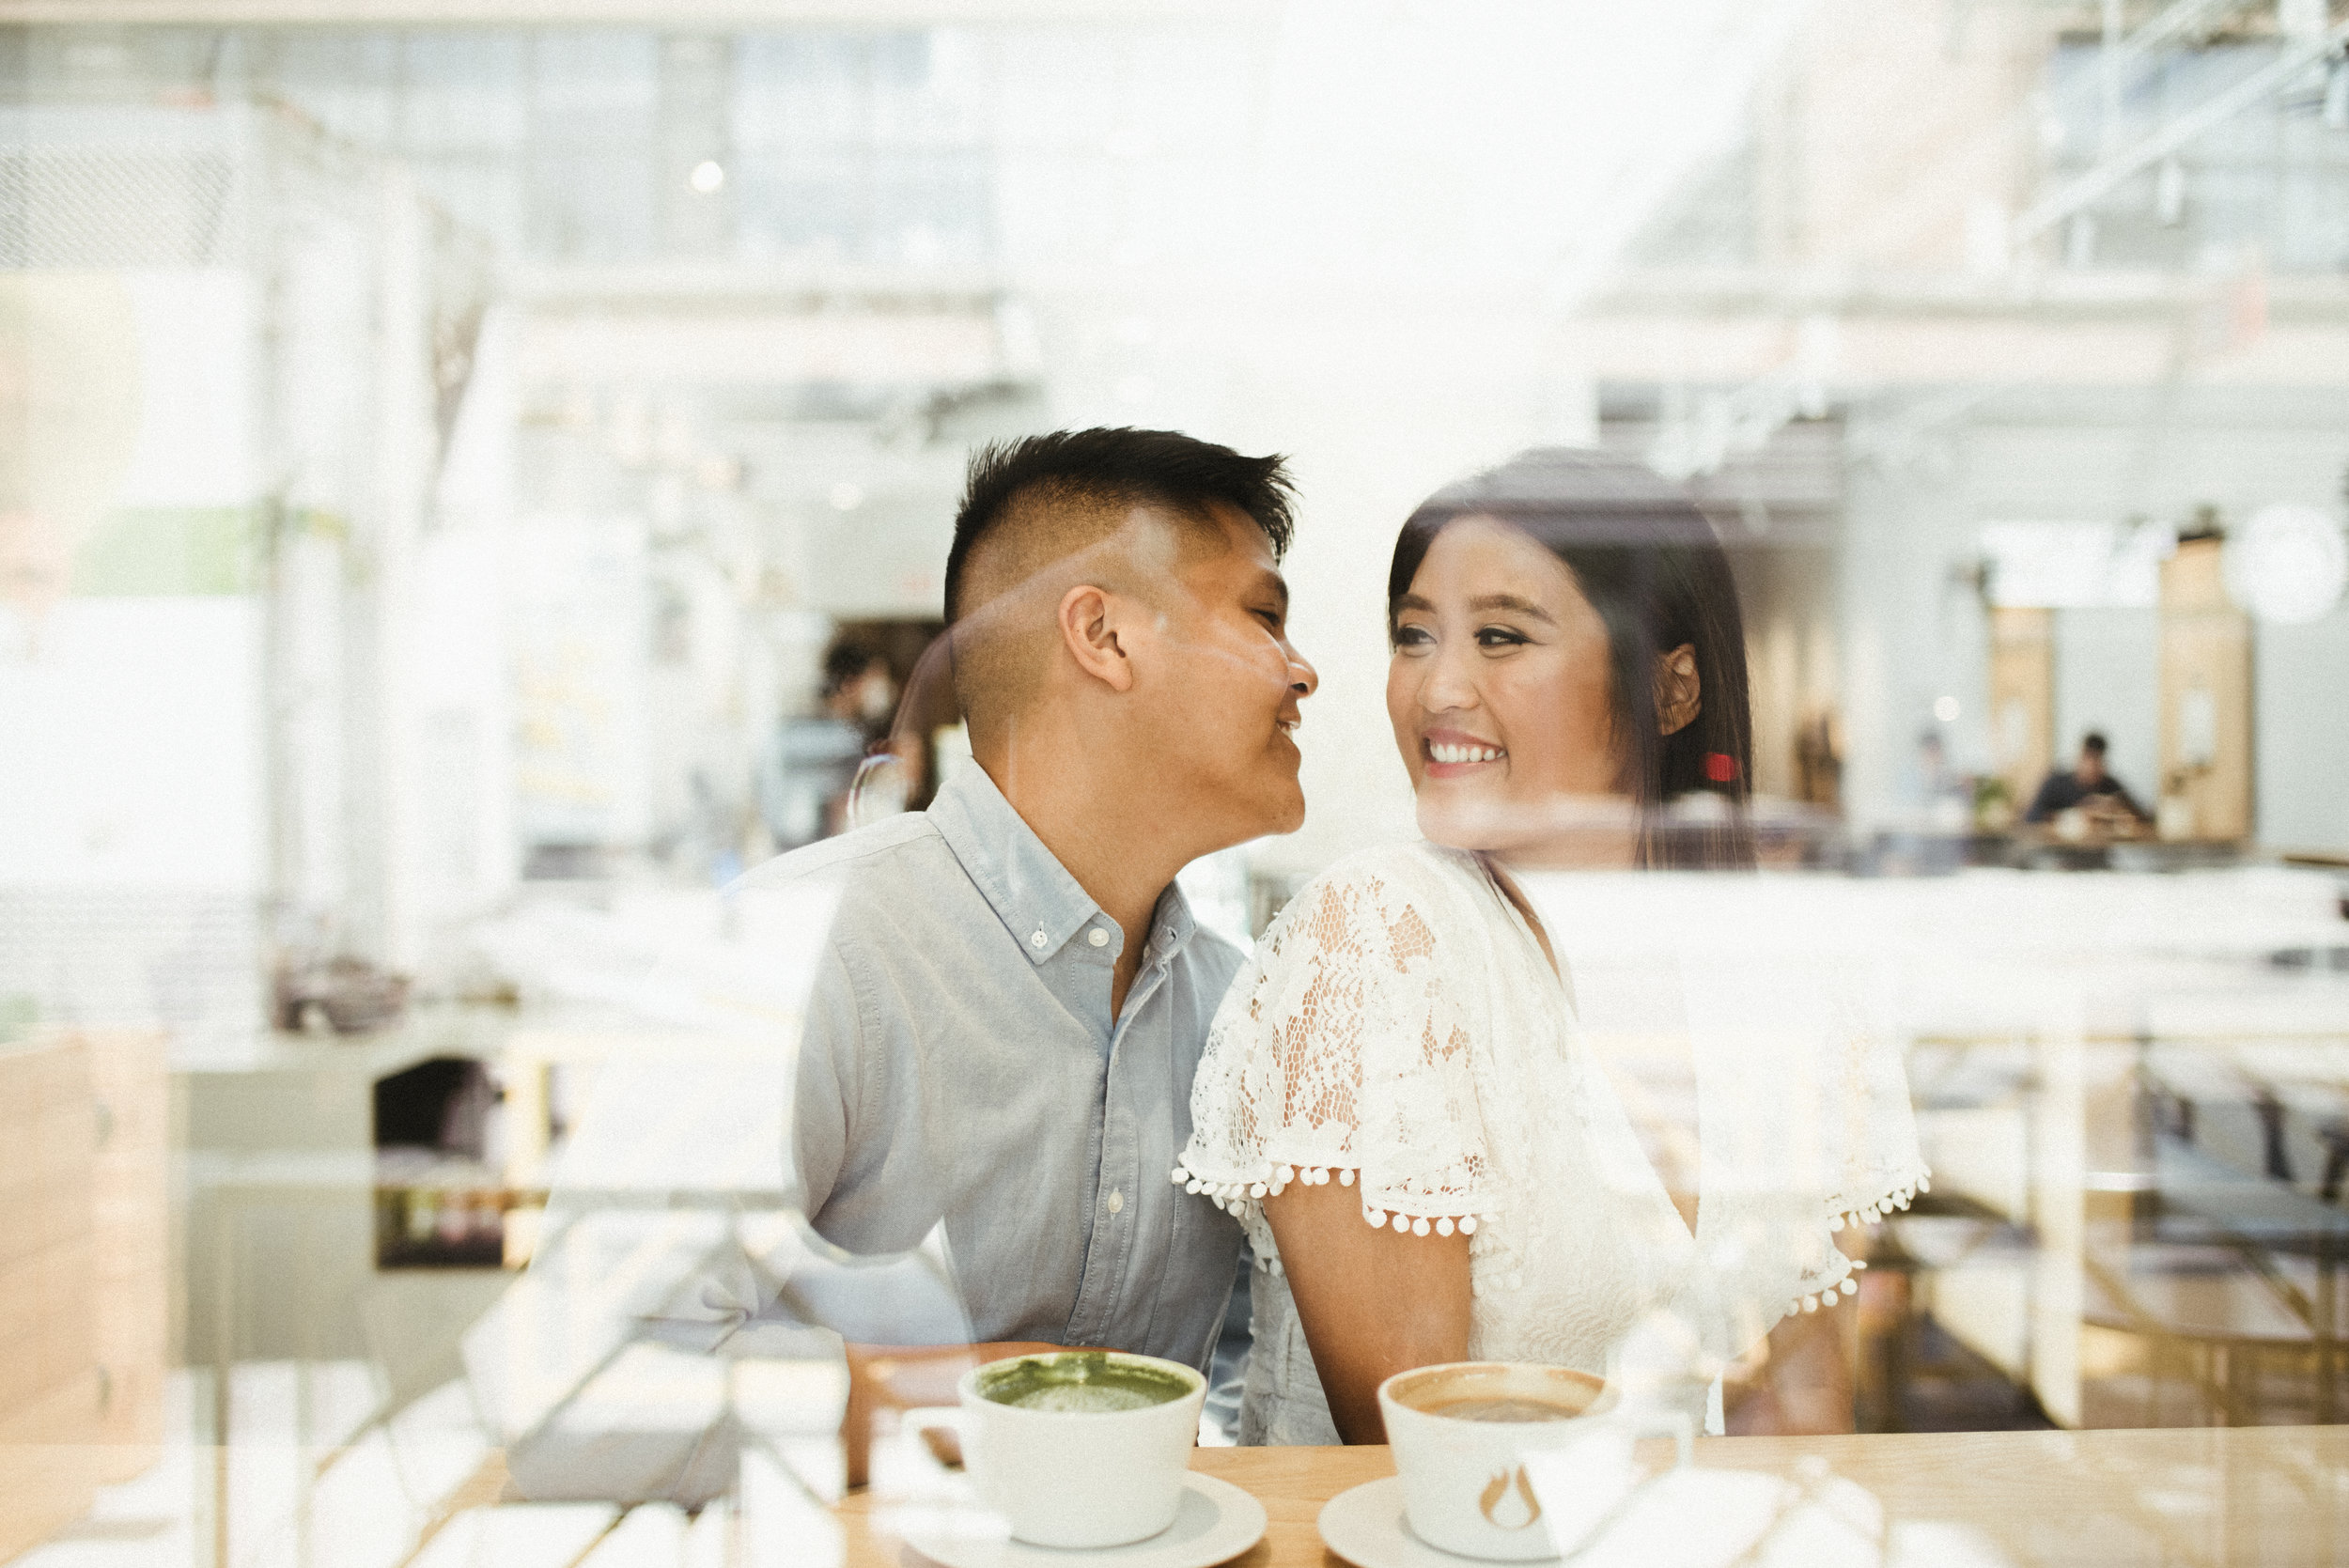 Mariel and Zach - Limitless Coffee & Tea Chicago Fulton Market Engagement Session | Chicago, IL | Chicago Wedding Photographer